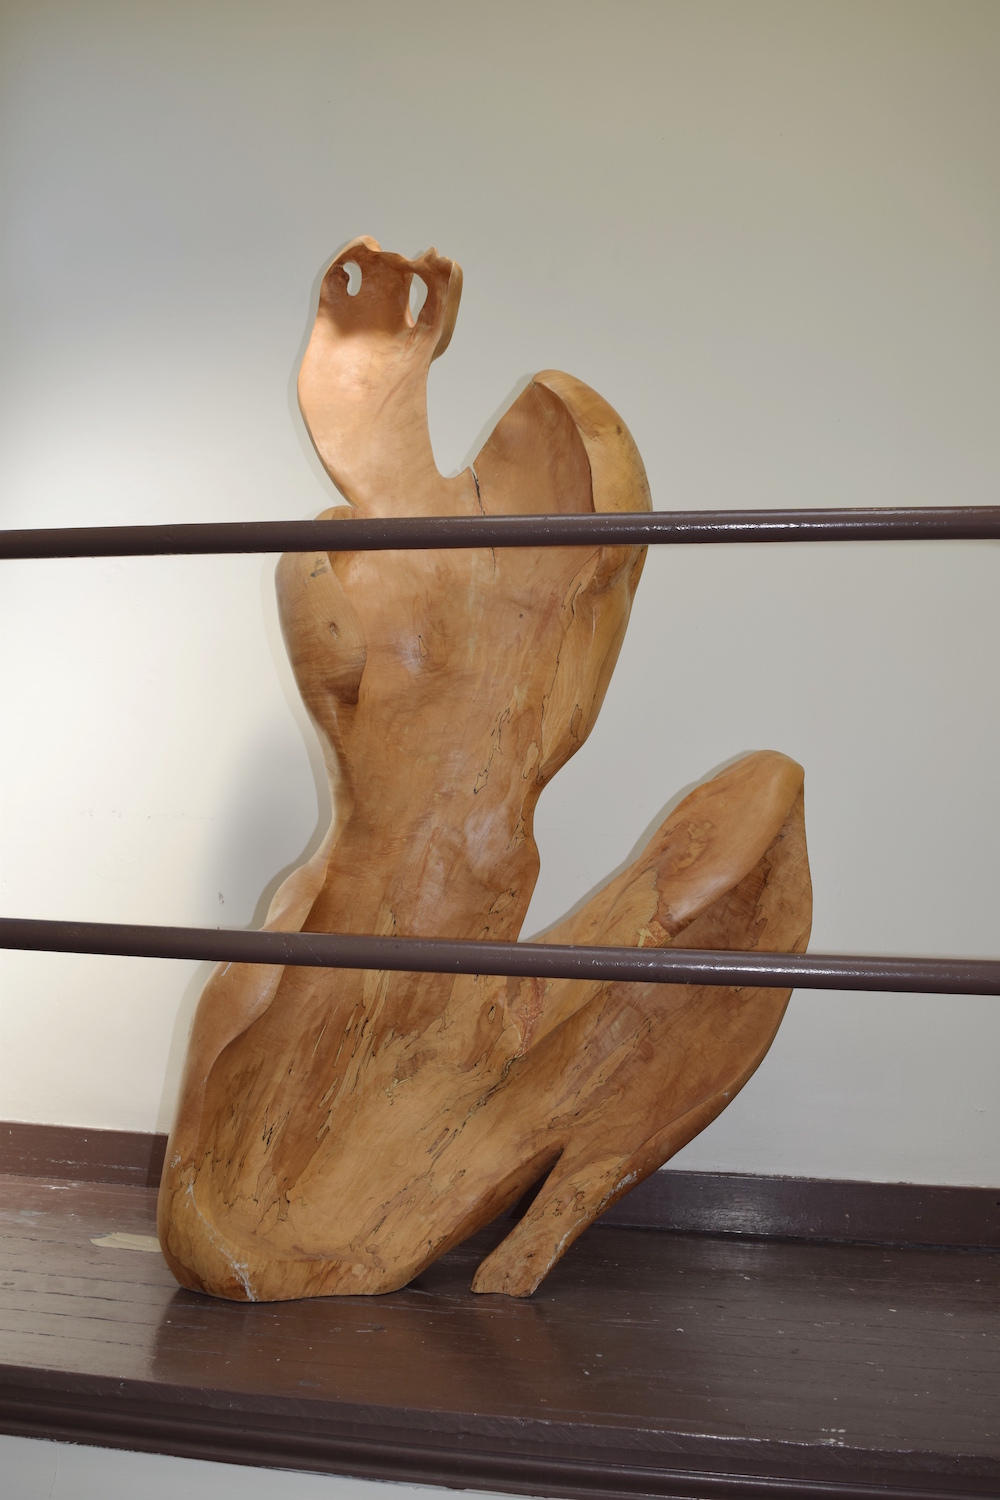 side shot of large wooden sculpture of abstract female form